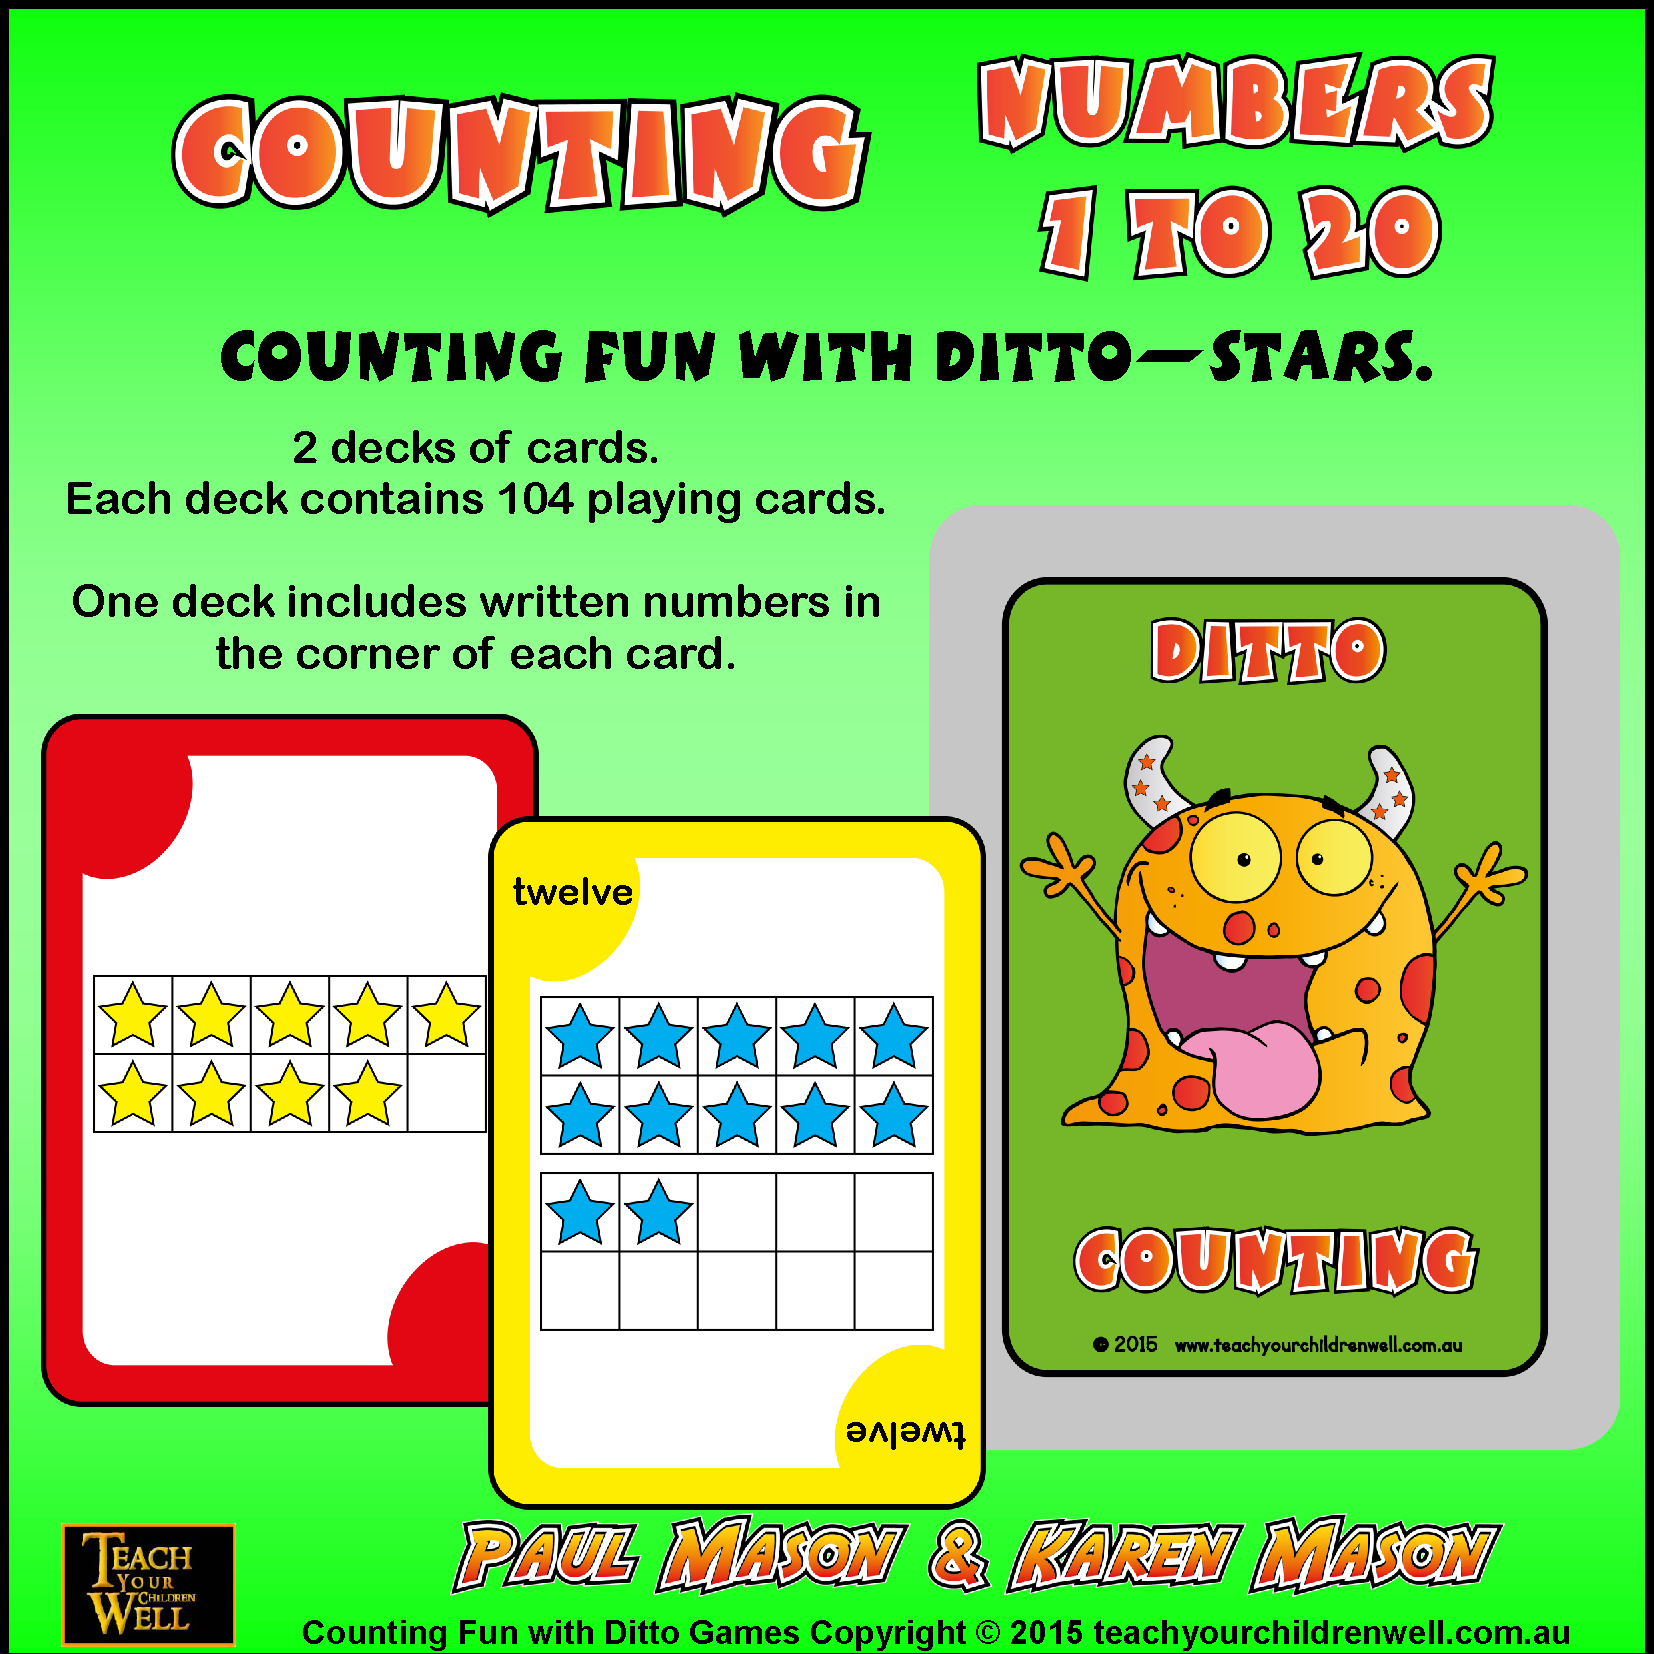 COUNTING NUMBERS 1 TO 20 WITH DITTO - STARS